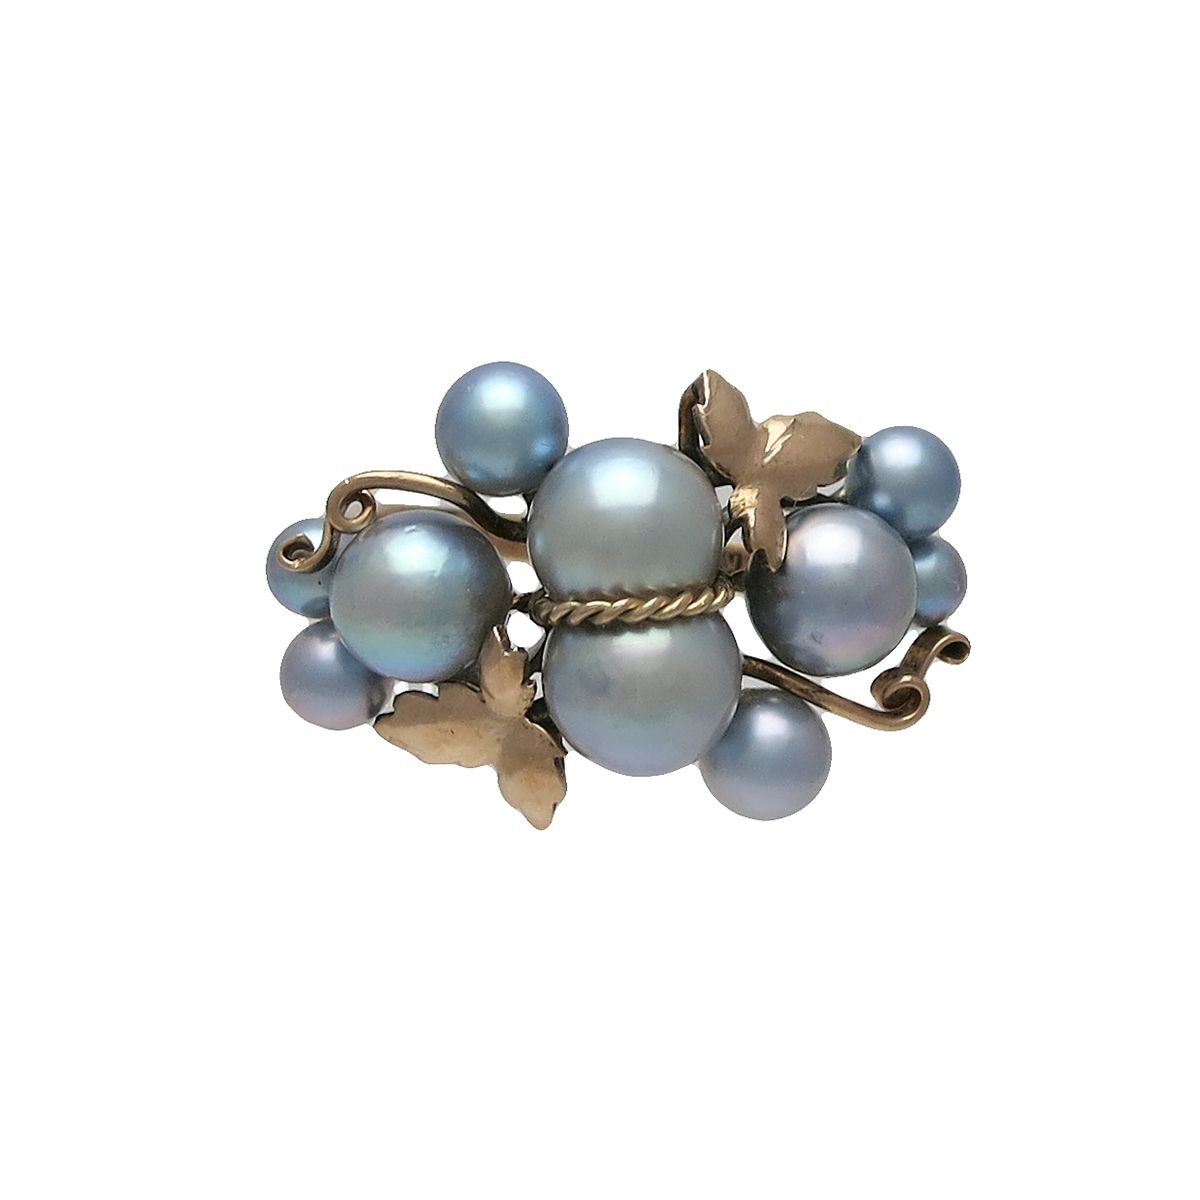 Vintage 10K Rose Gold and Blue Pearl Grape Ring, c. 1960s. $675